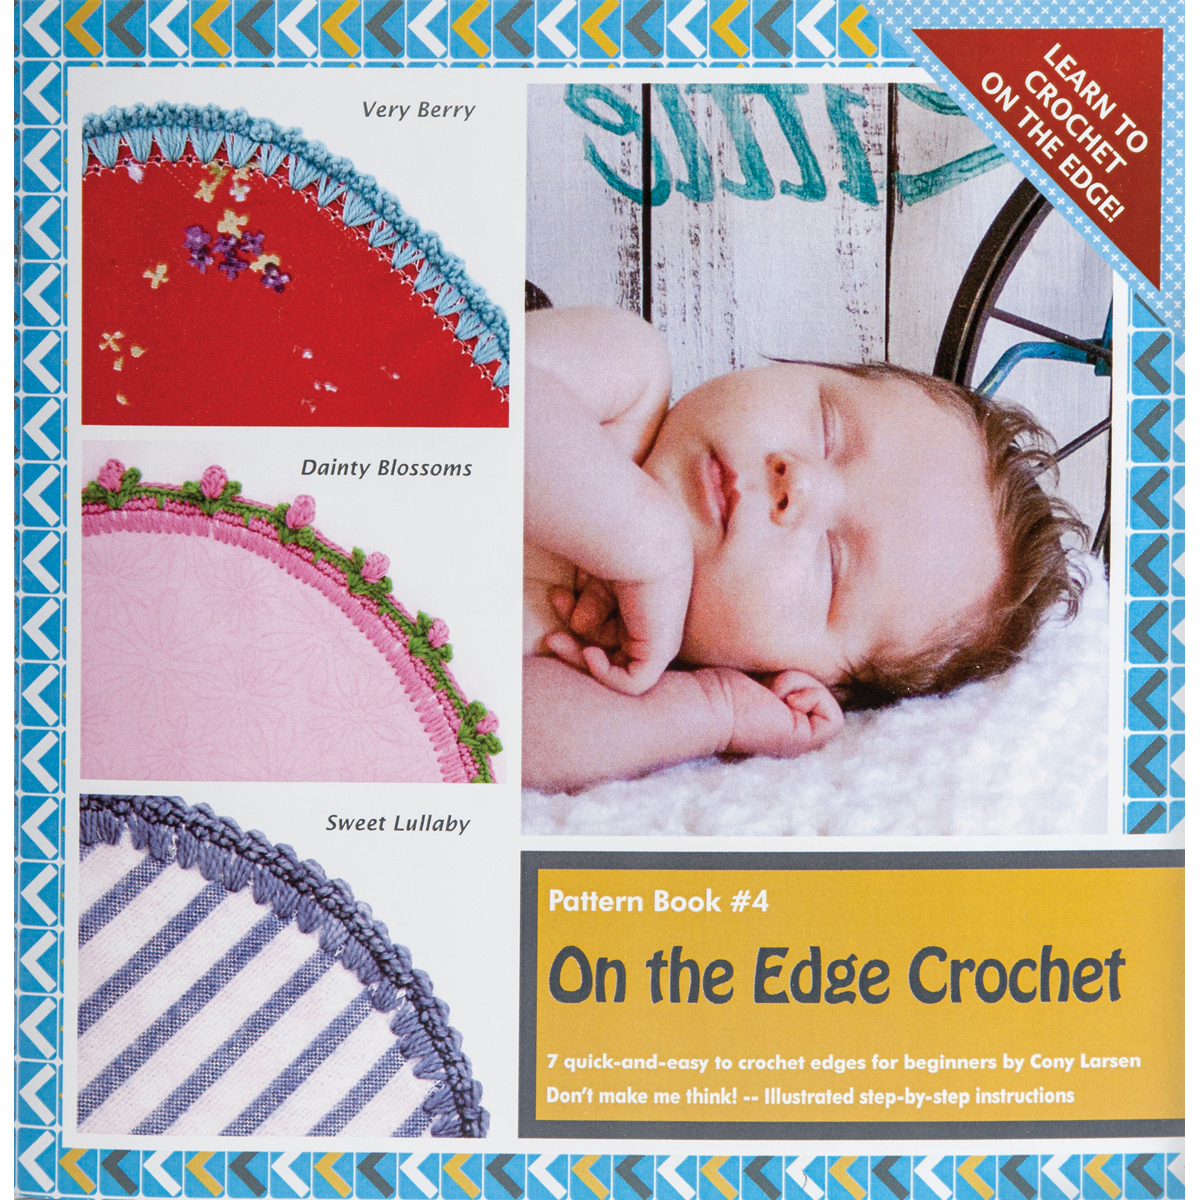 On The Edge Crochet: Pattern Book #4